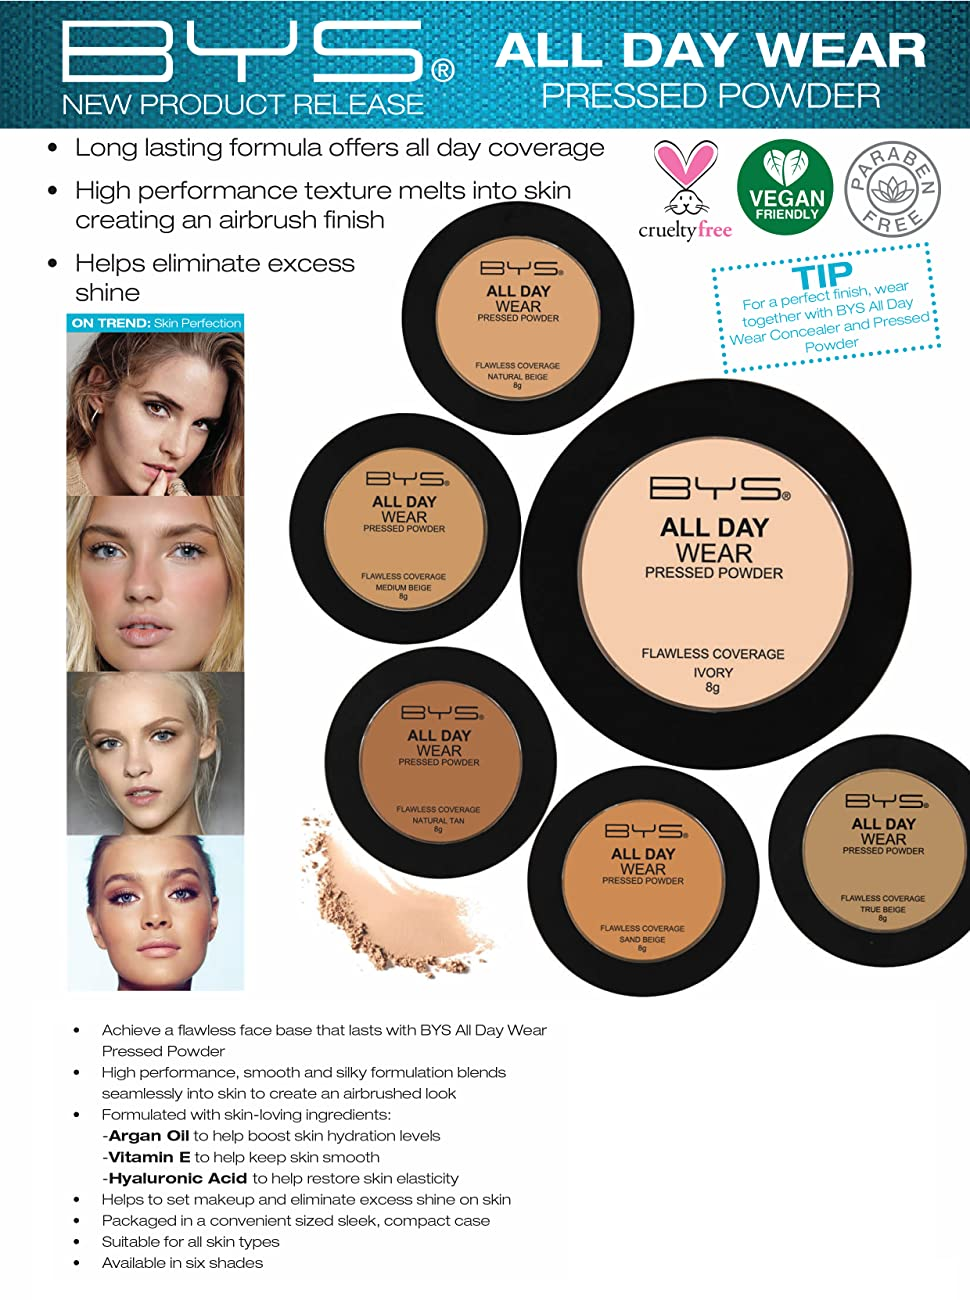 Pressed Powder flawless base smooth blends Argan hydration antioxidant Vitamin E Hyaluronic Acid